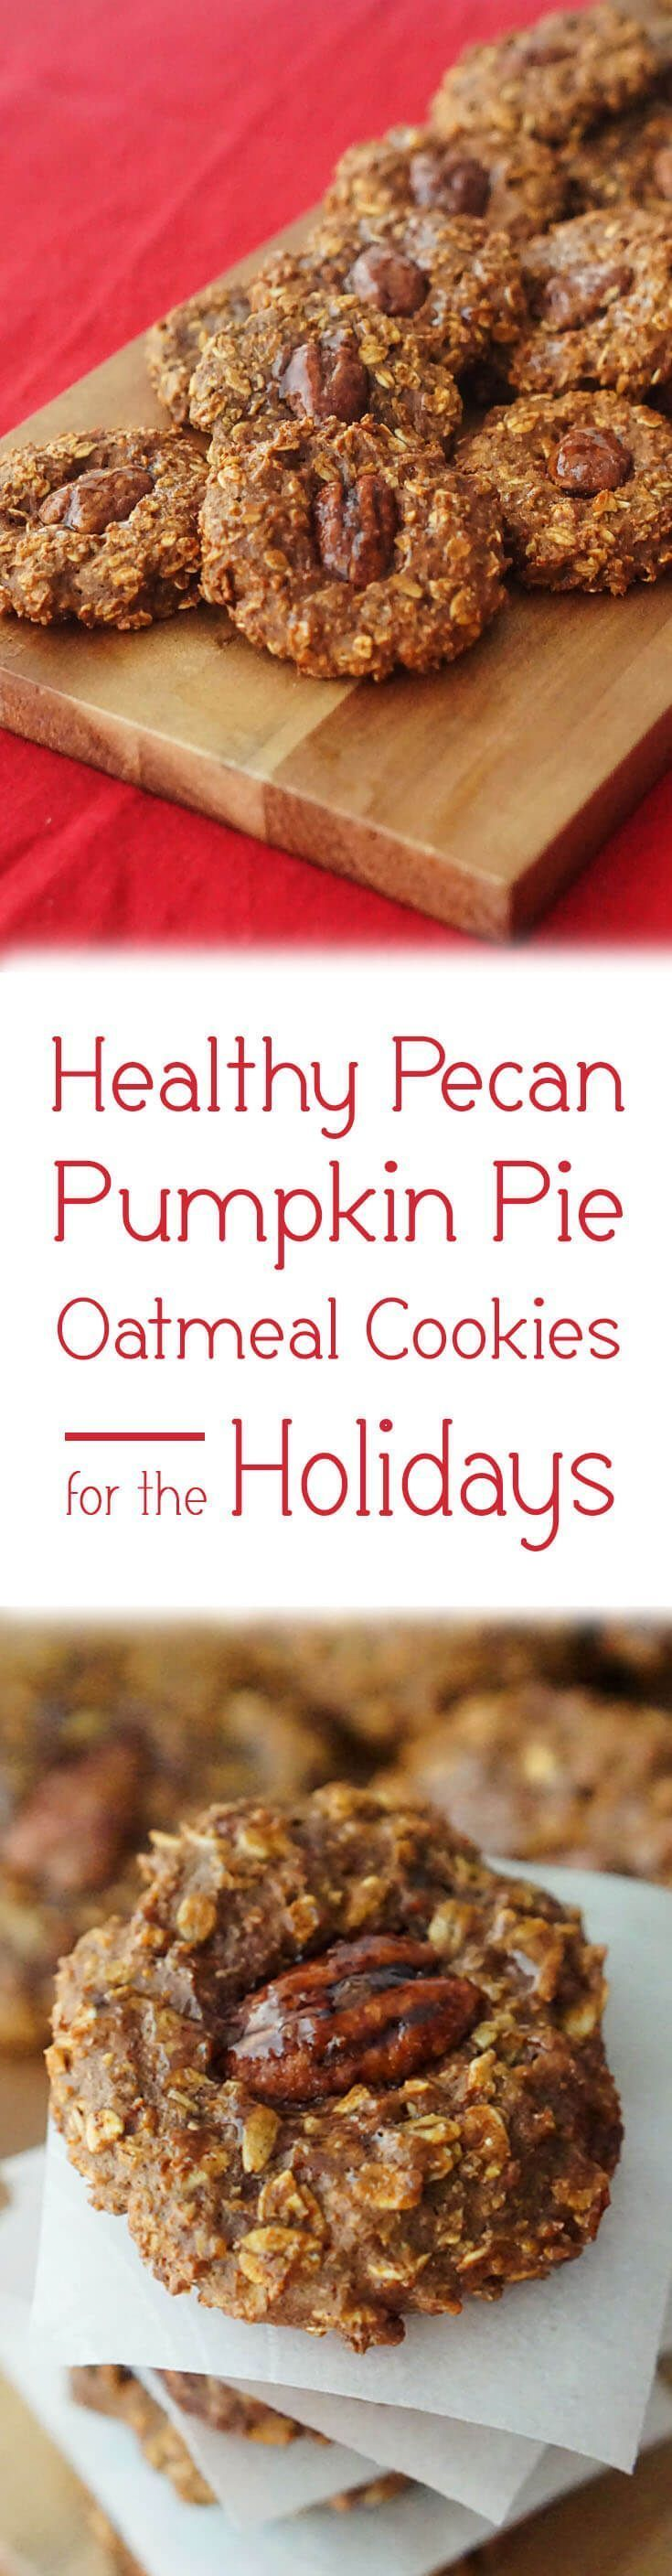 These Pecan Pumpkin Pie Oatmeal Cookies are the perfect holiday treat. (fall recipes pecan pies)